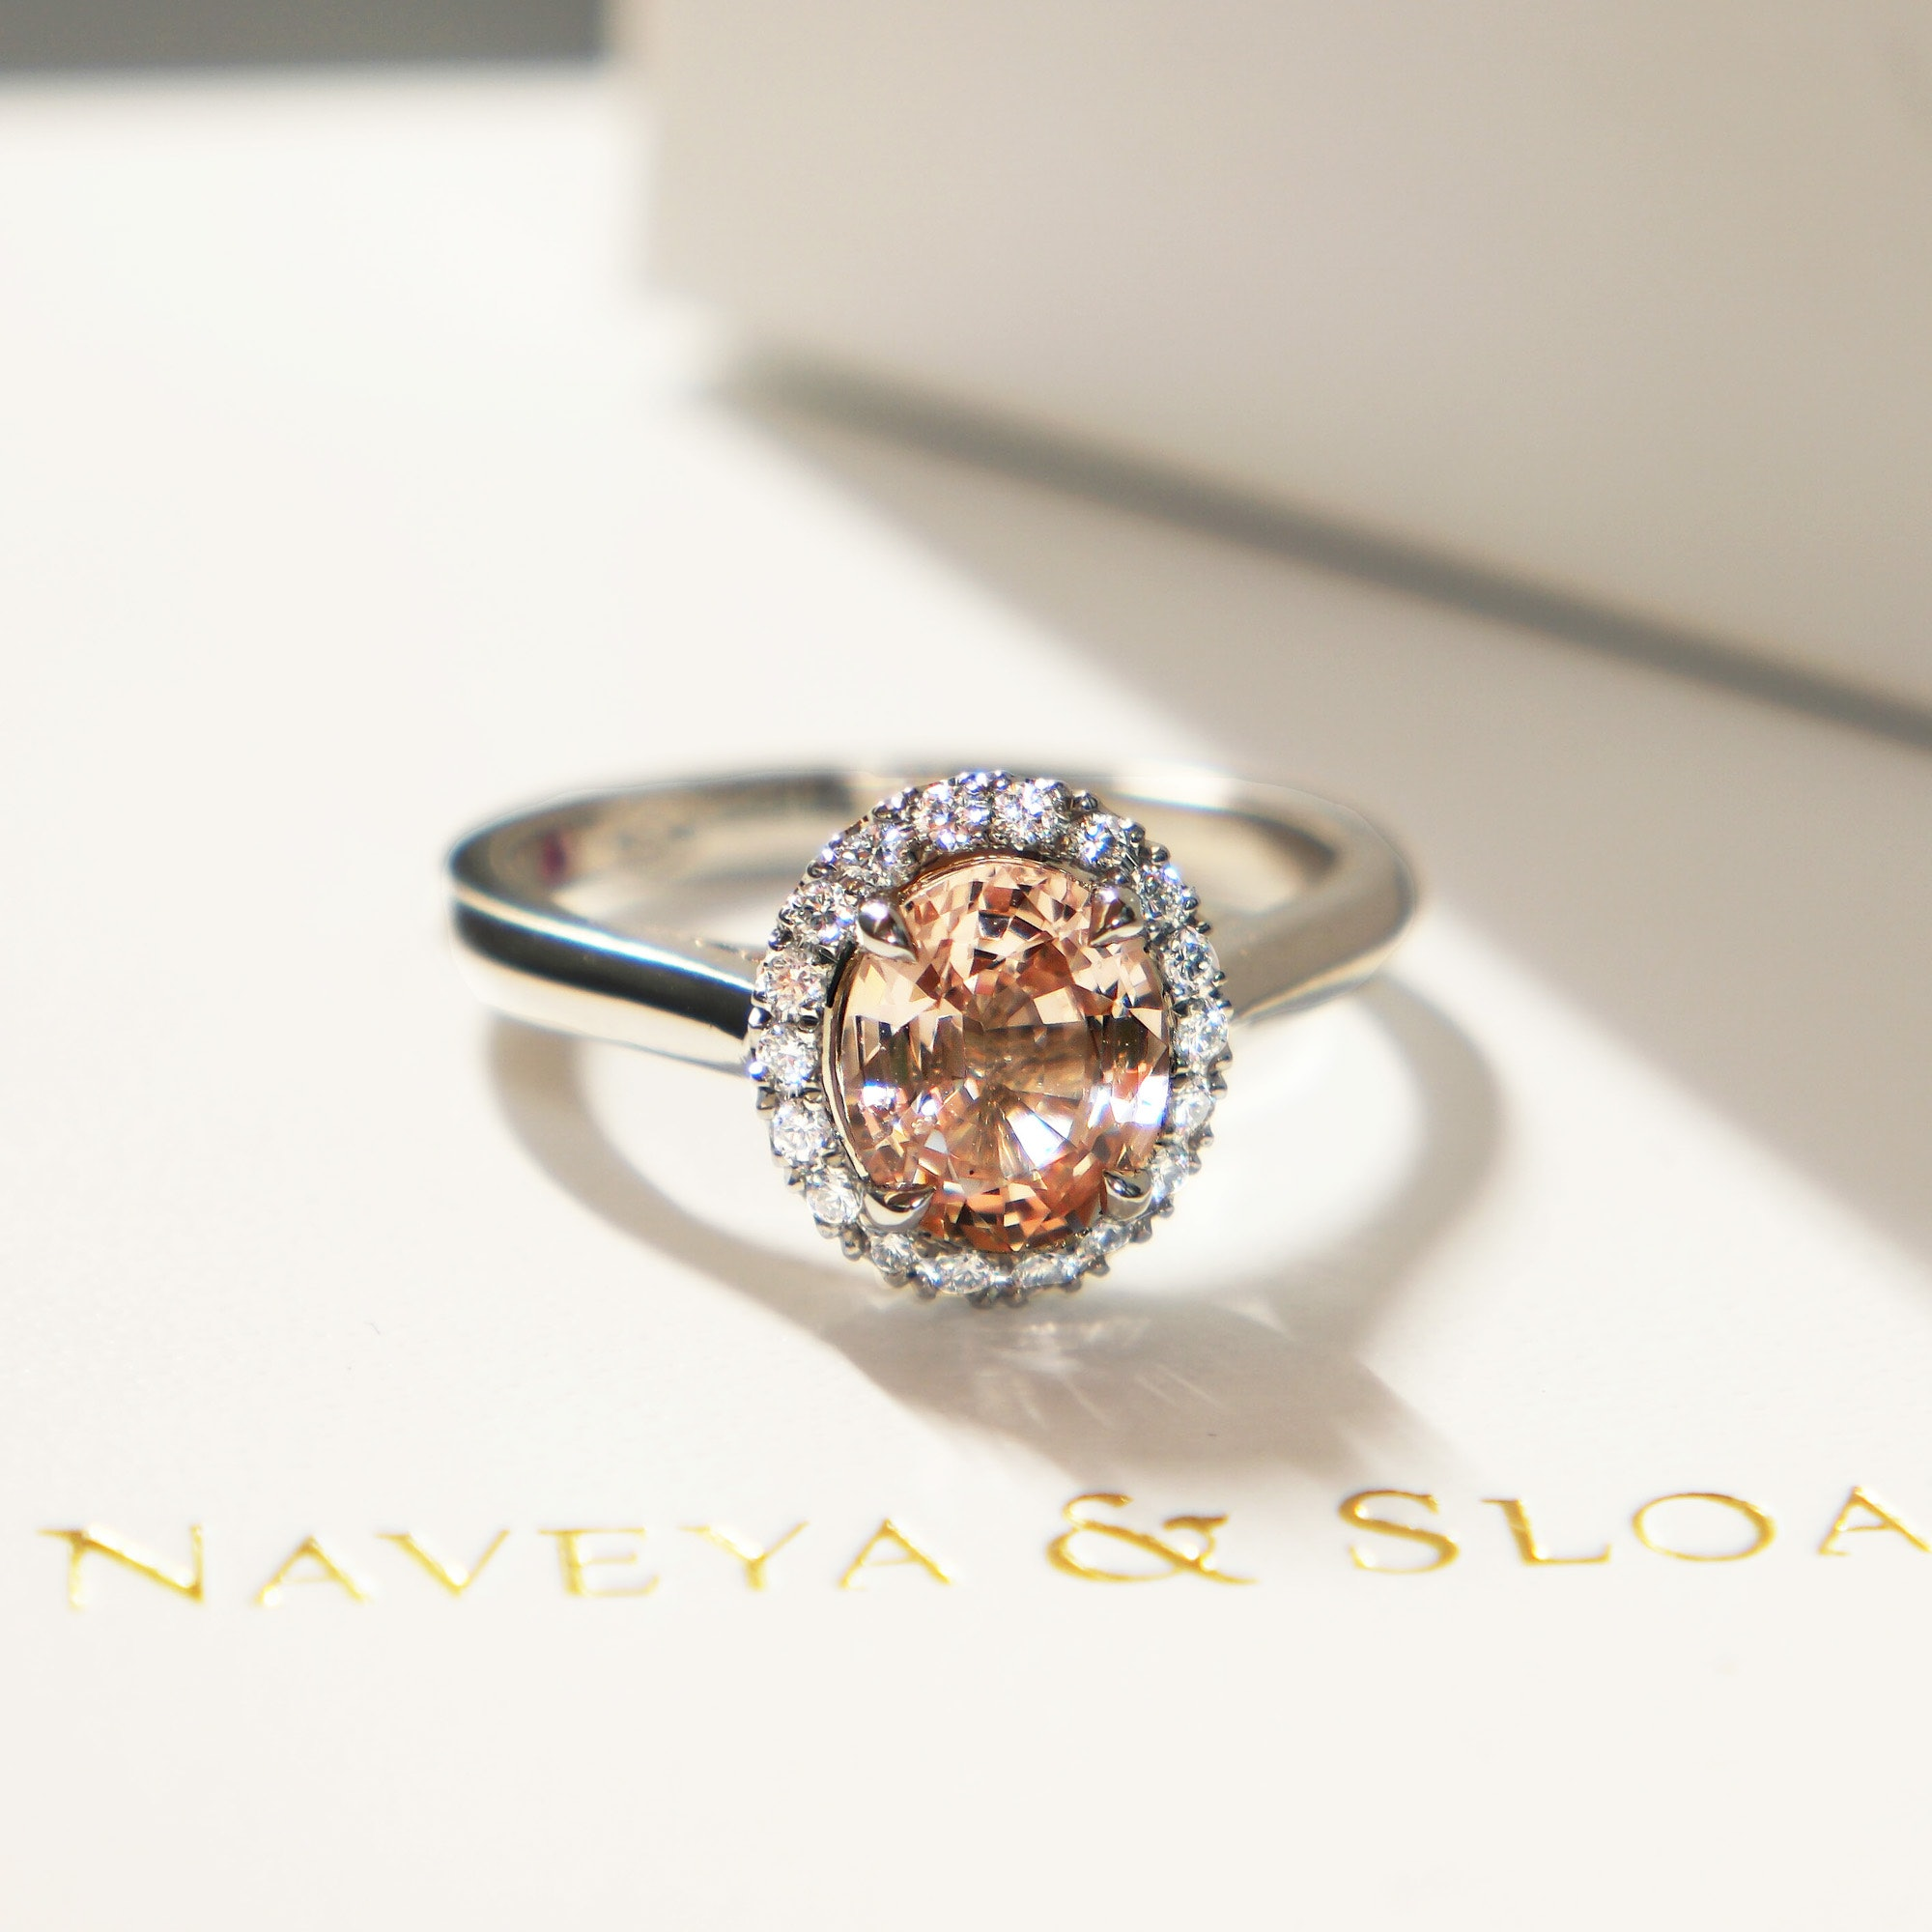 bespoke naveya jewellery designs engagement rings